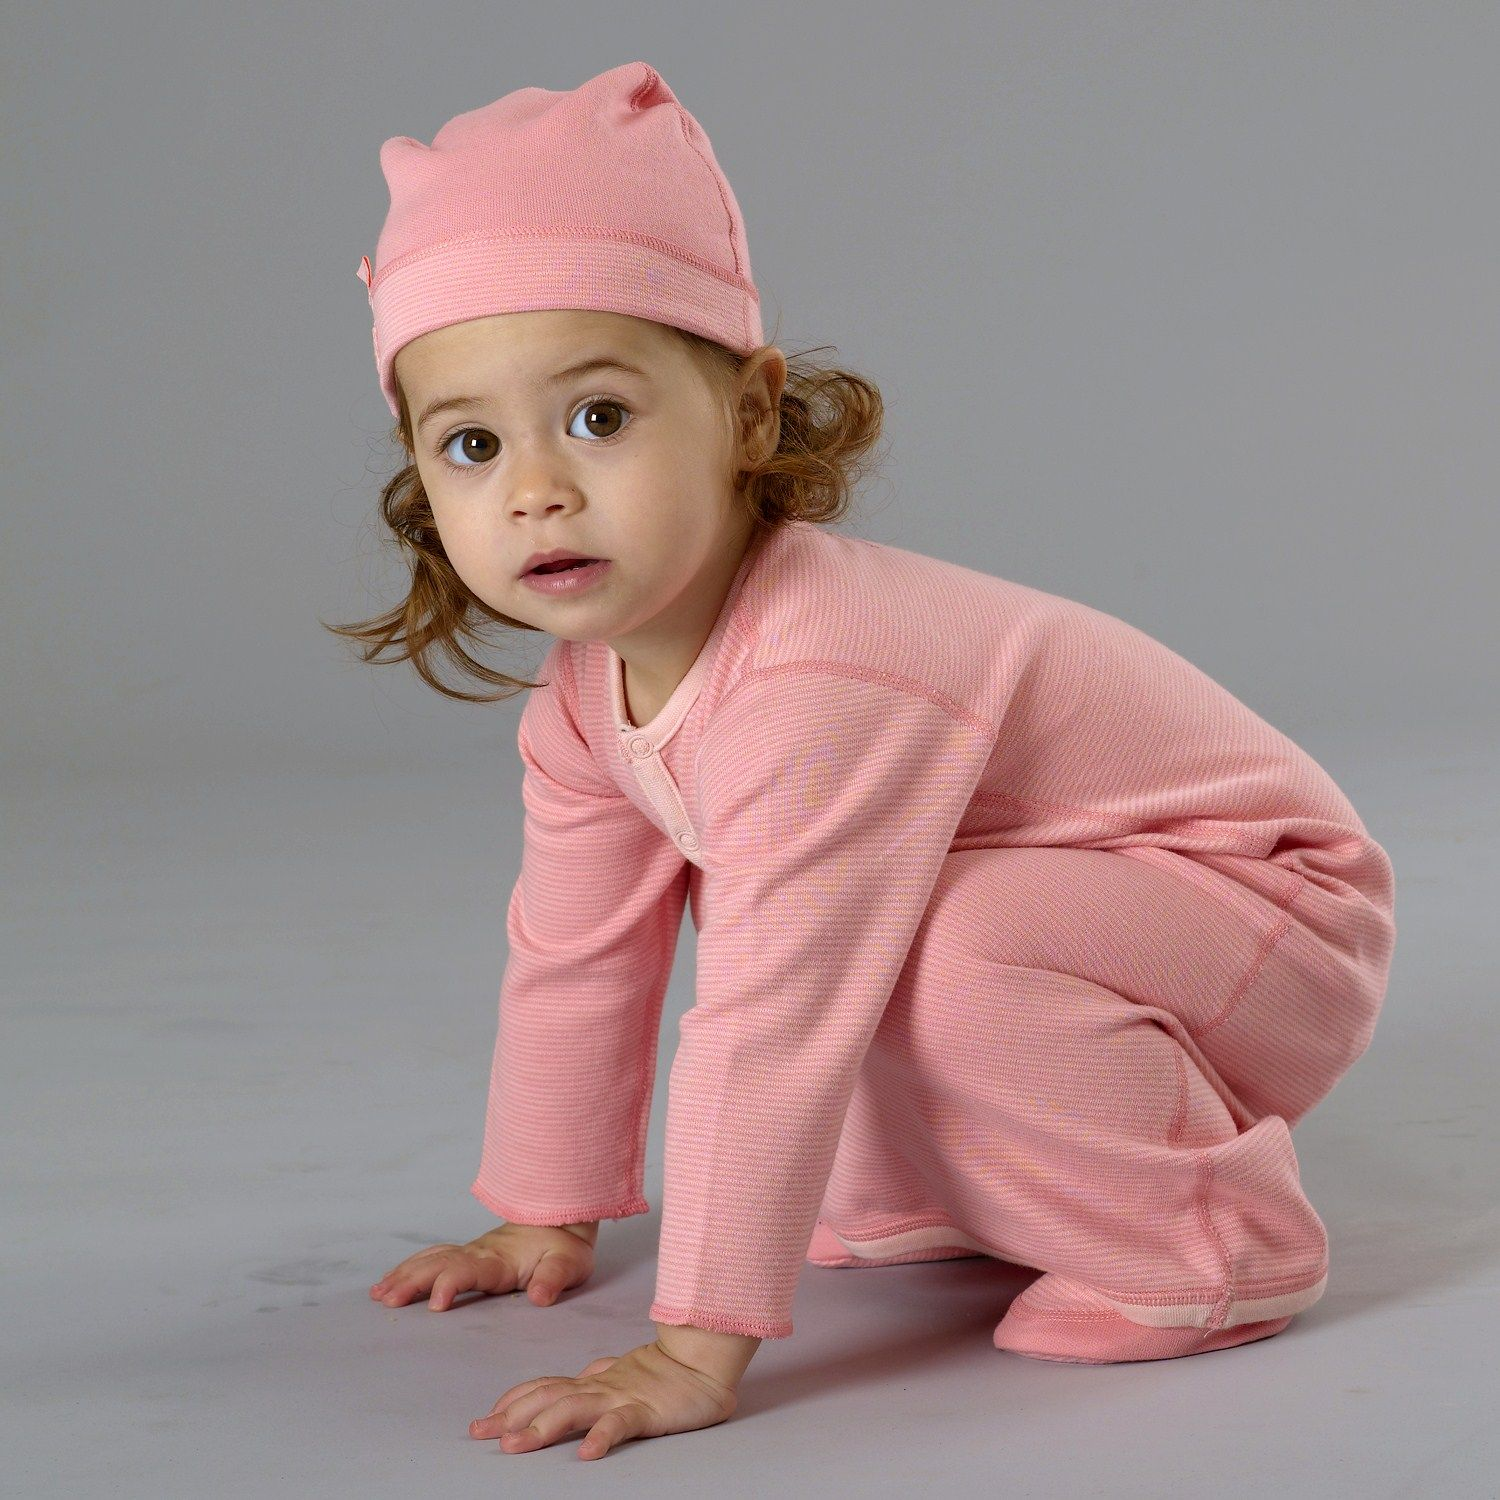 Stylish Mom and Kids Currently our top selling organic baby